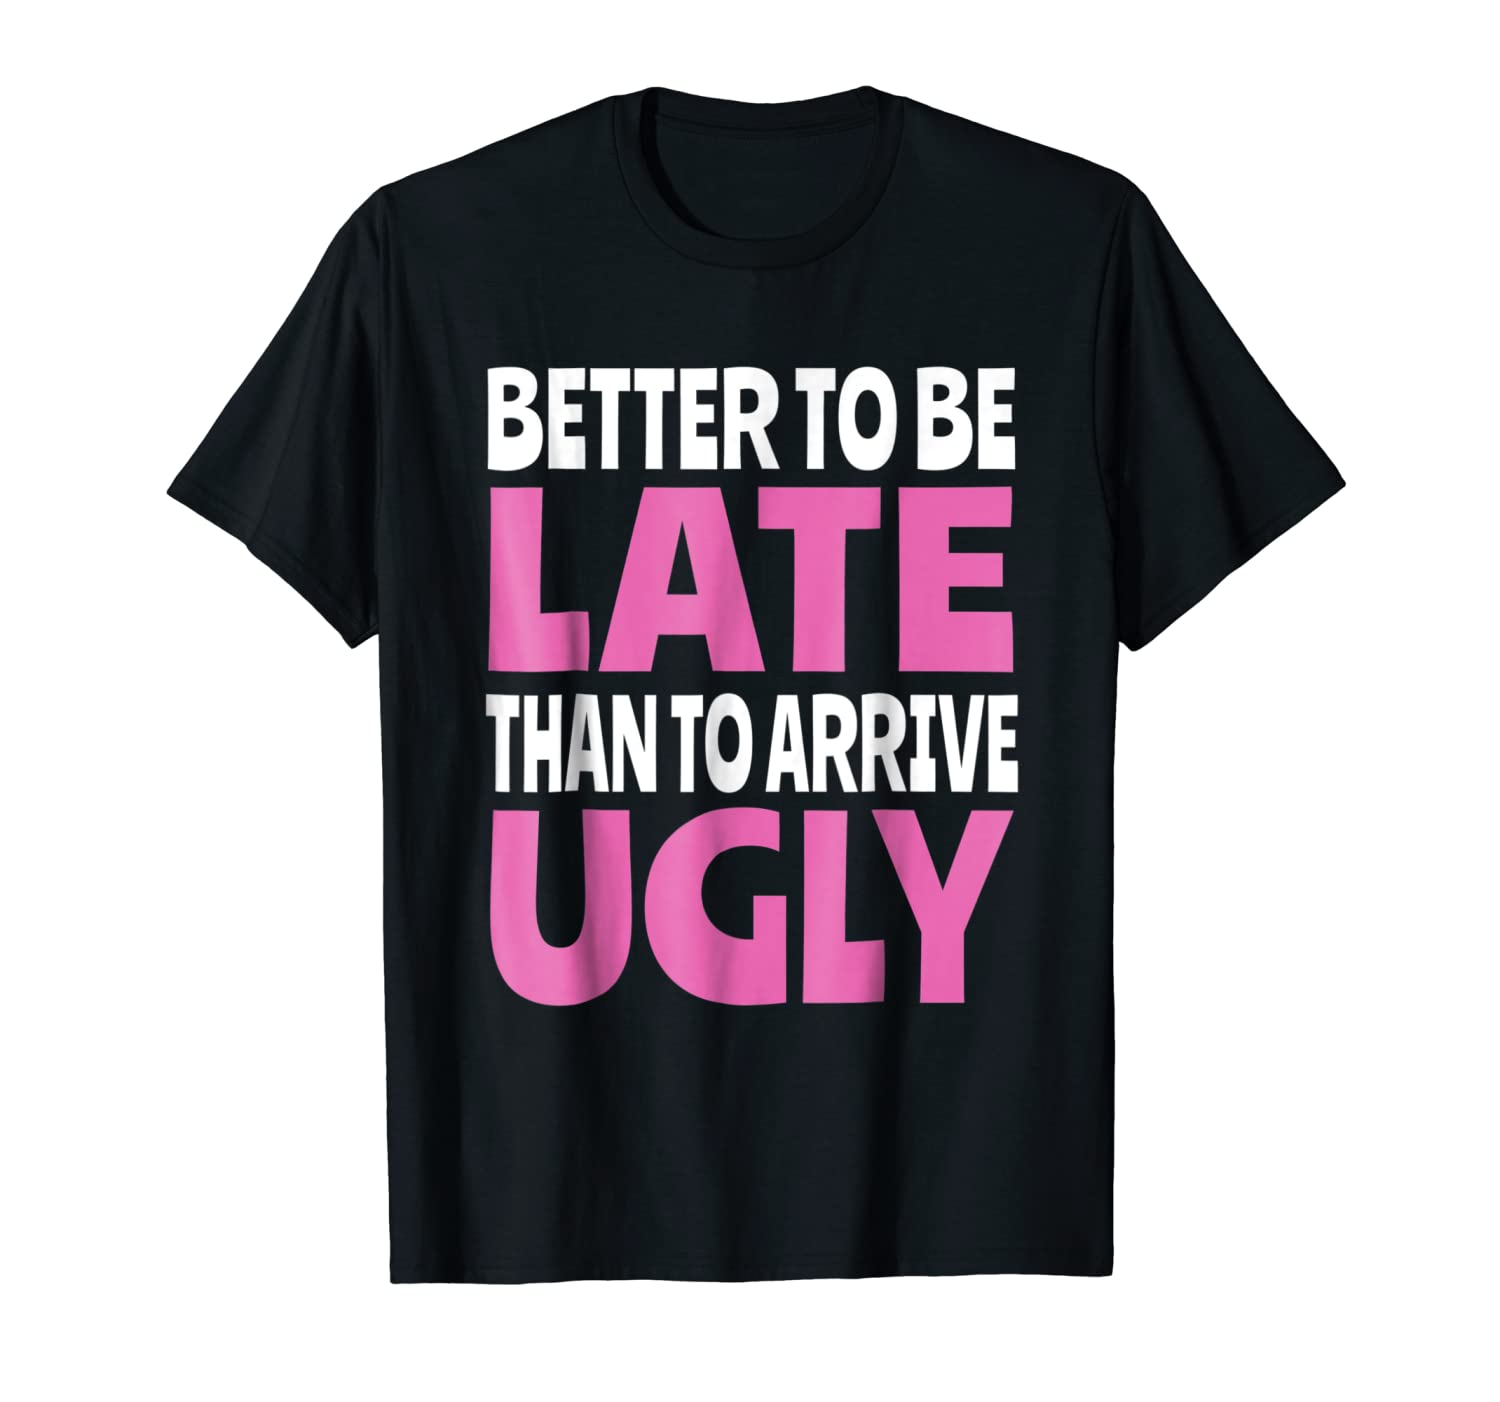 4877ddb77 Amazon.com: Better To Be Late Than Arrive Ugly Shirt: Clothing